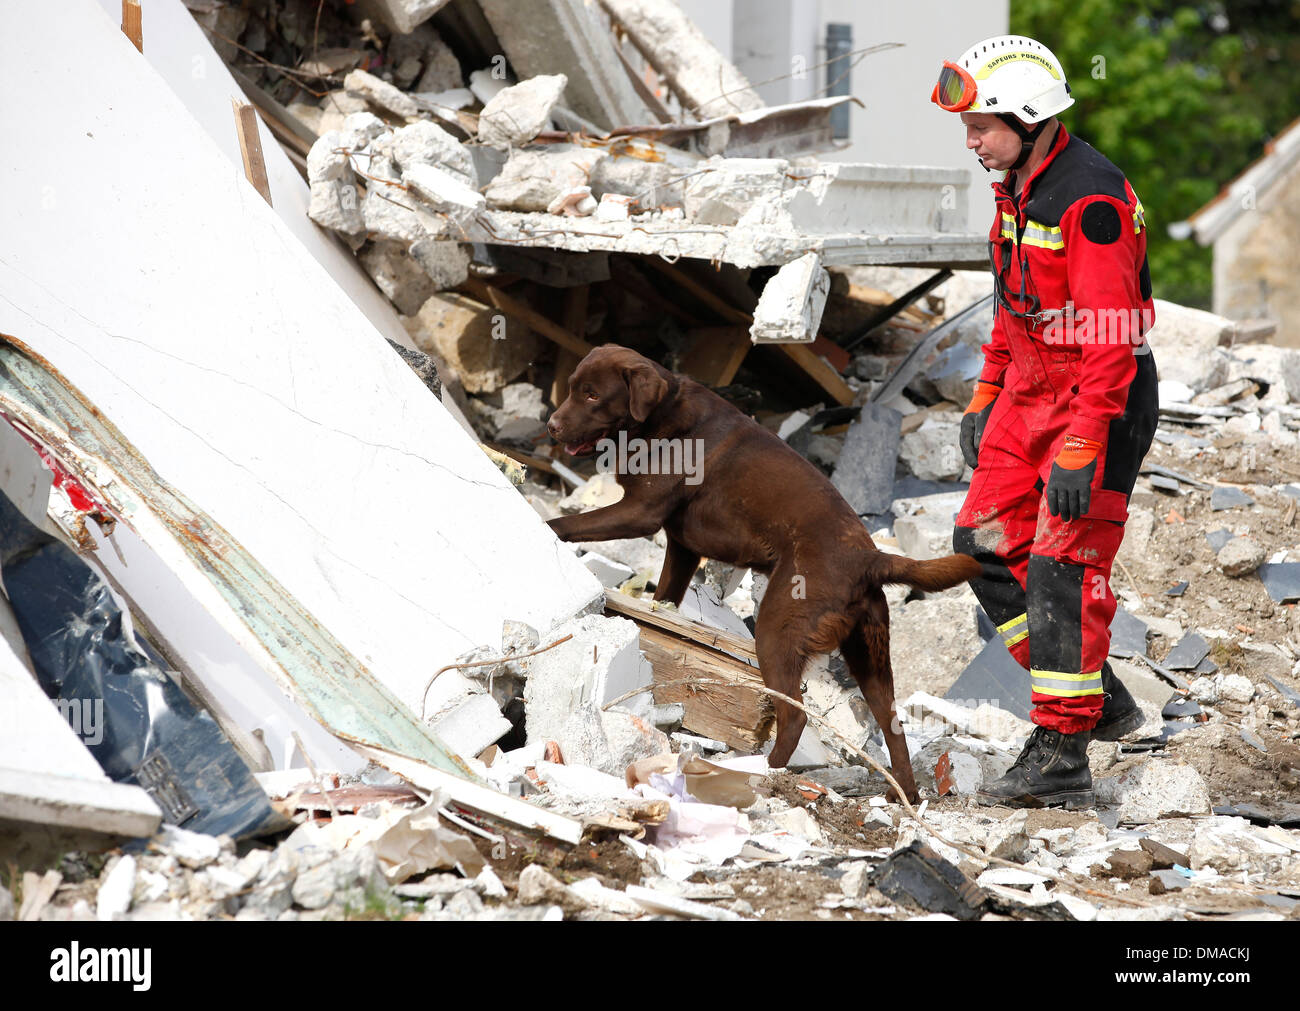 Cher: SDIS 18, dog team at the Cher departement fire and rescue service - Stock Image